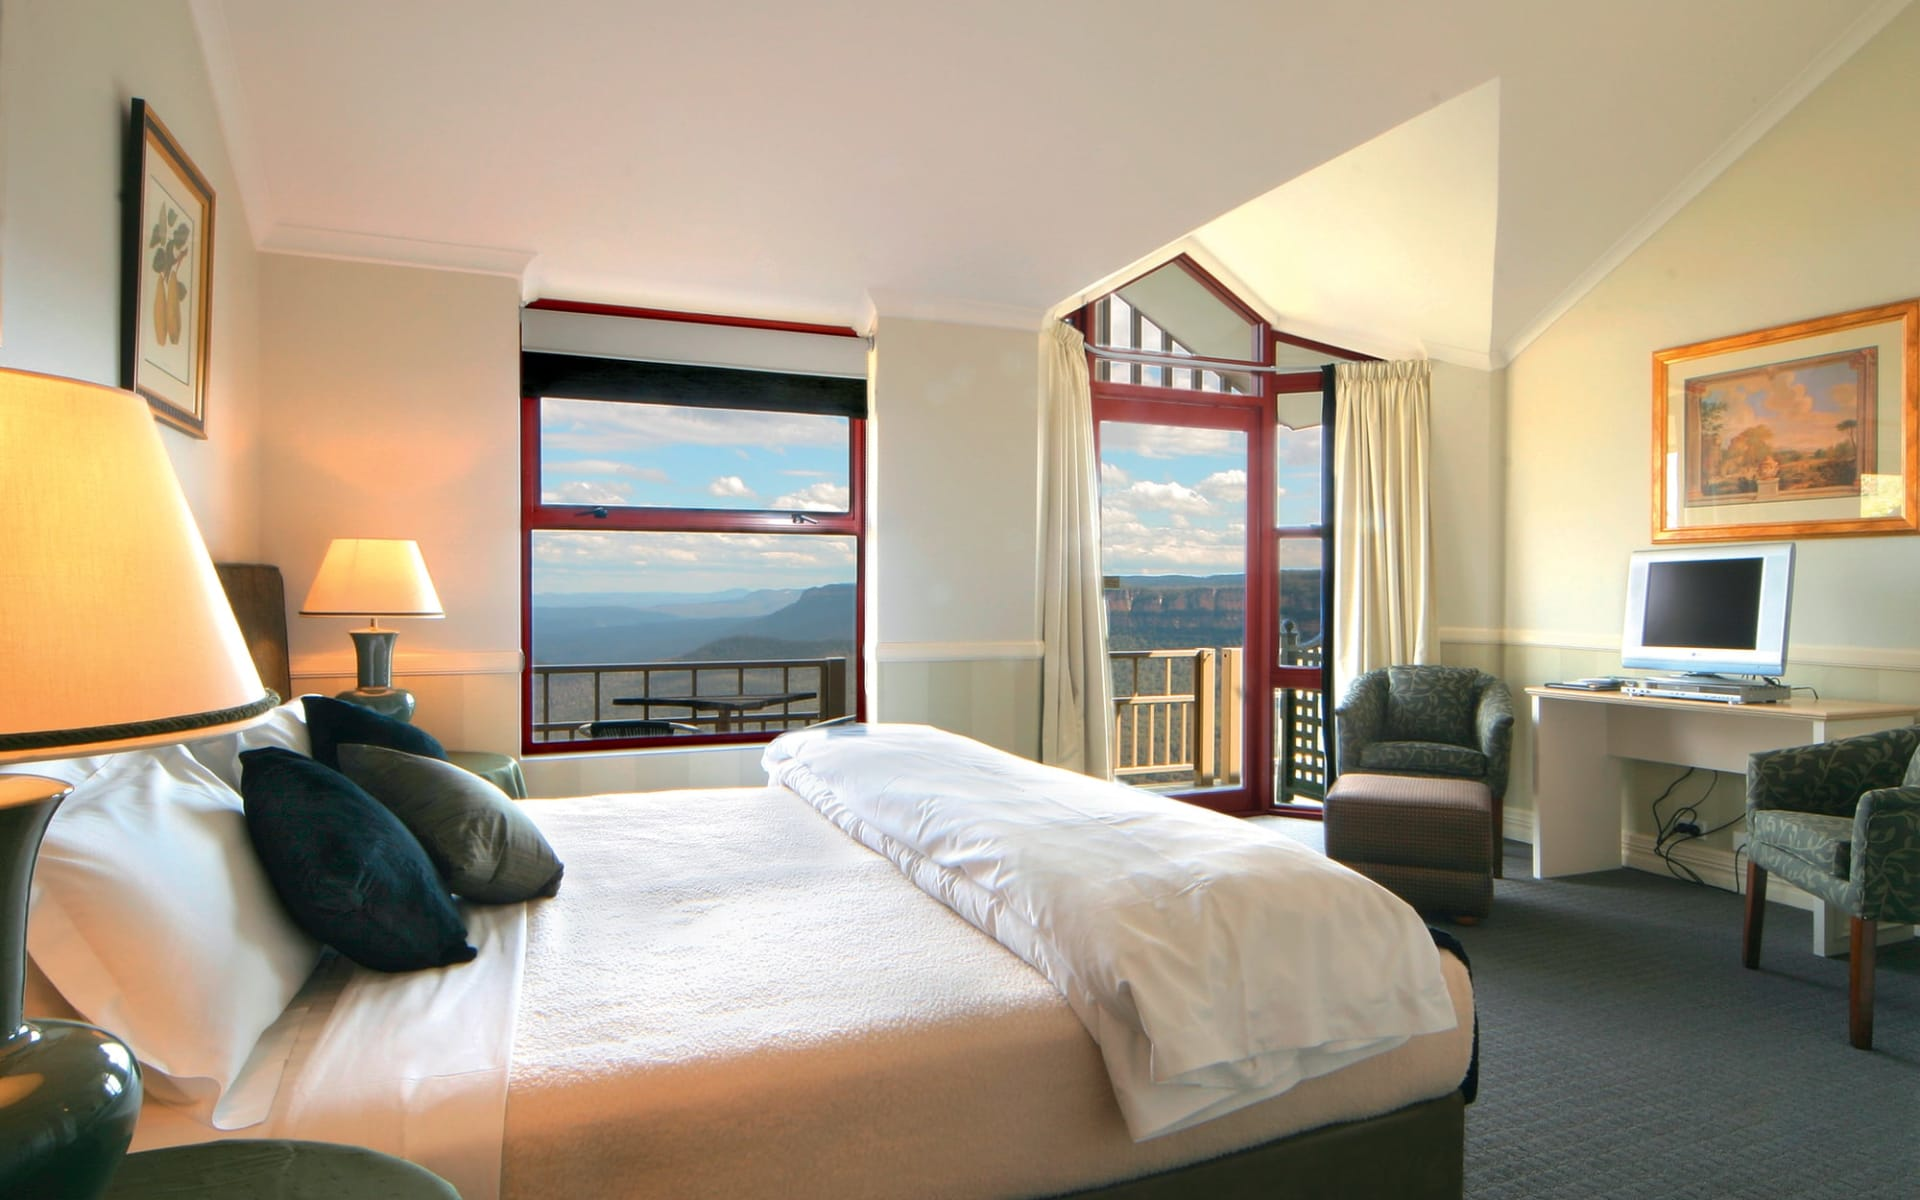 Echoes Boutique Hotel in Blue Mountains:  Echoes Boutique Hotel - Deluxe View Room